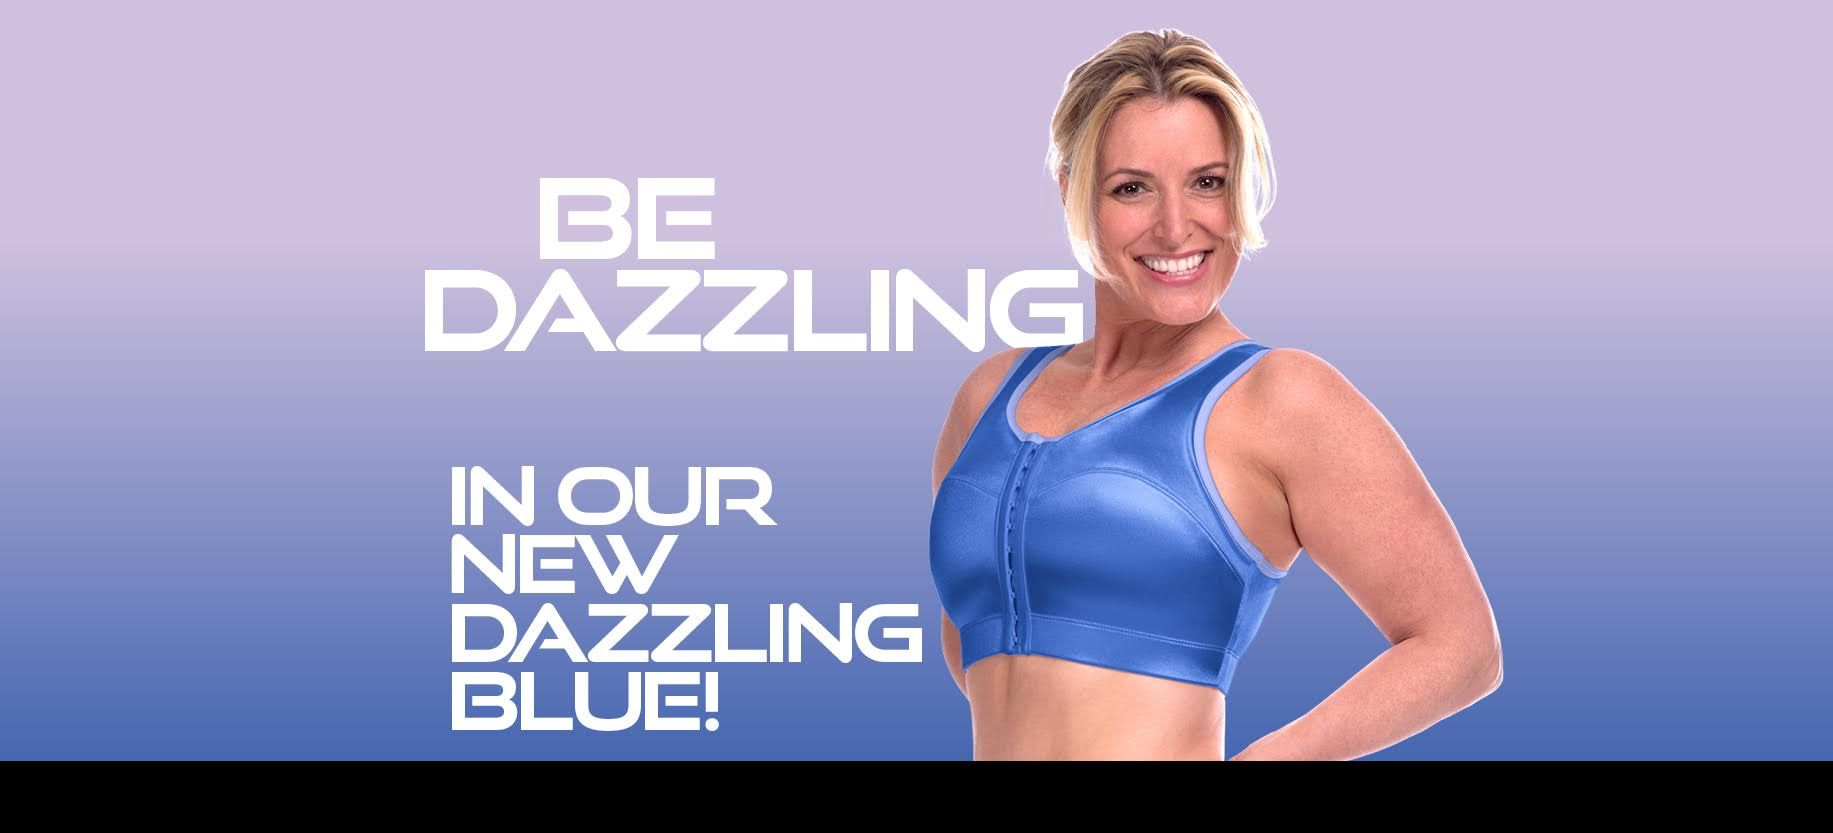 5a3c62642e1 New Limited Edition Dazzling Blue sports bra from ENELL